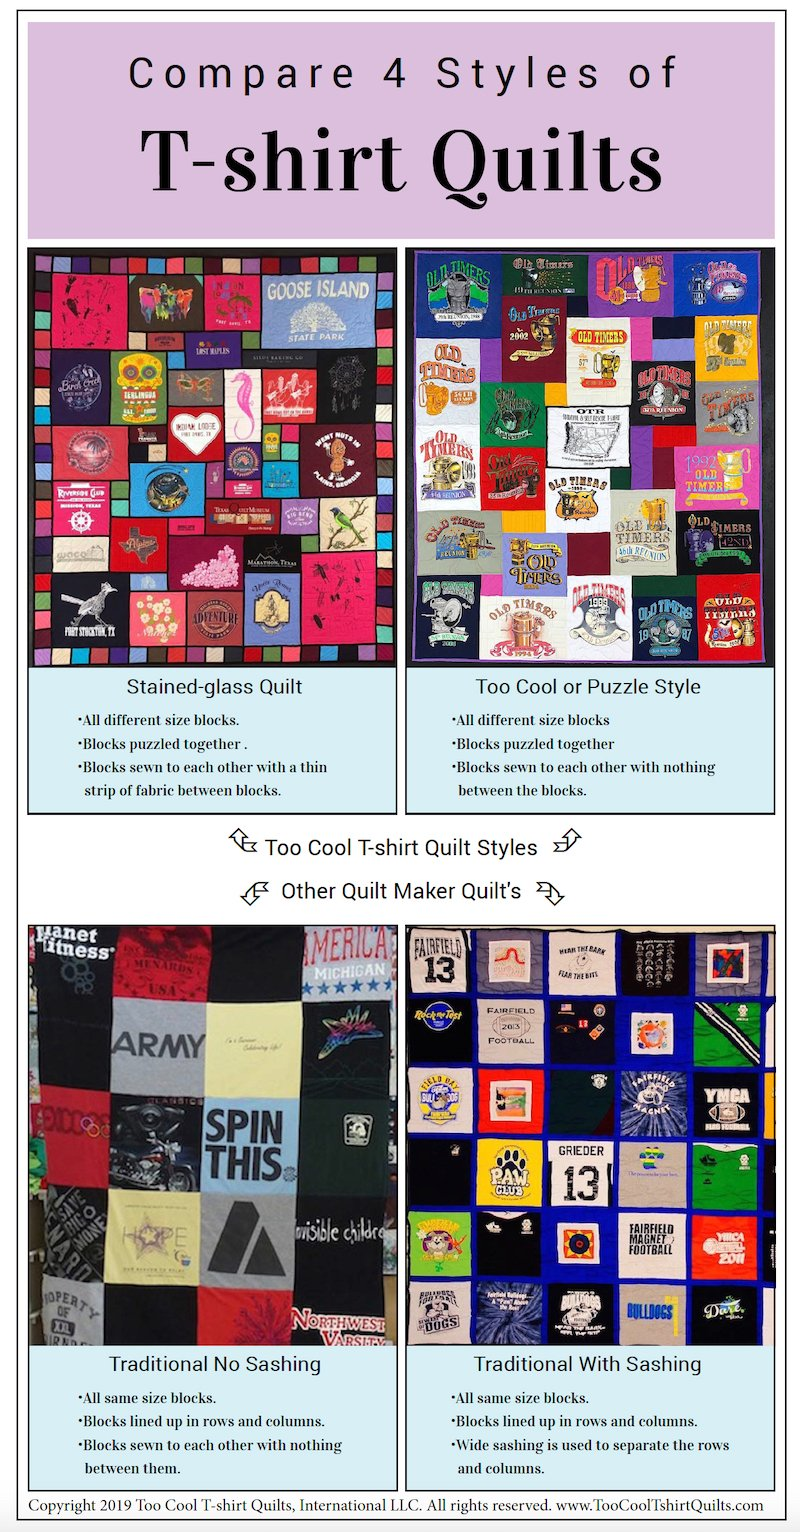 This infographic compares 4 types of T-shirt quilts. You can quickly see the difference between all 4 styles here.